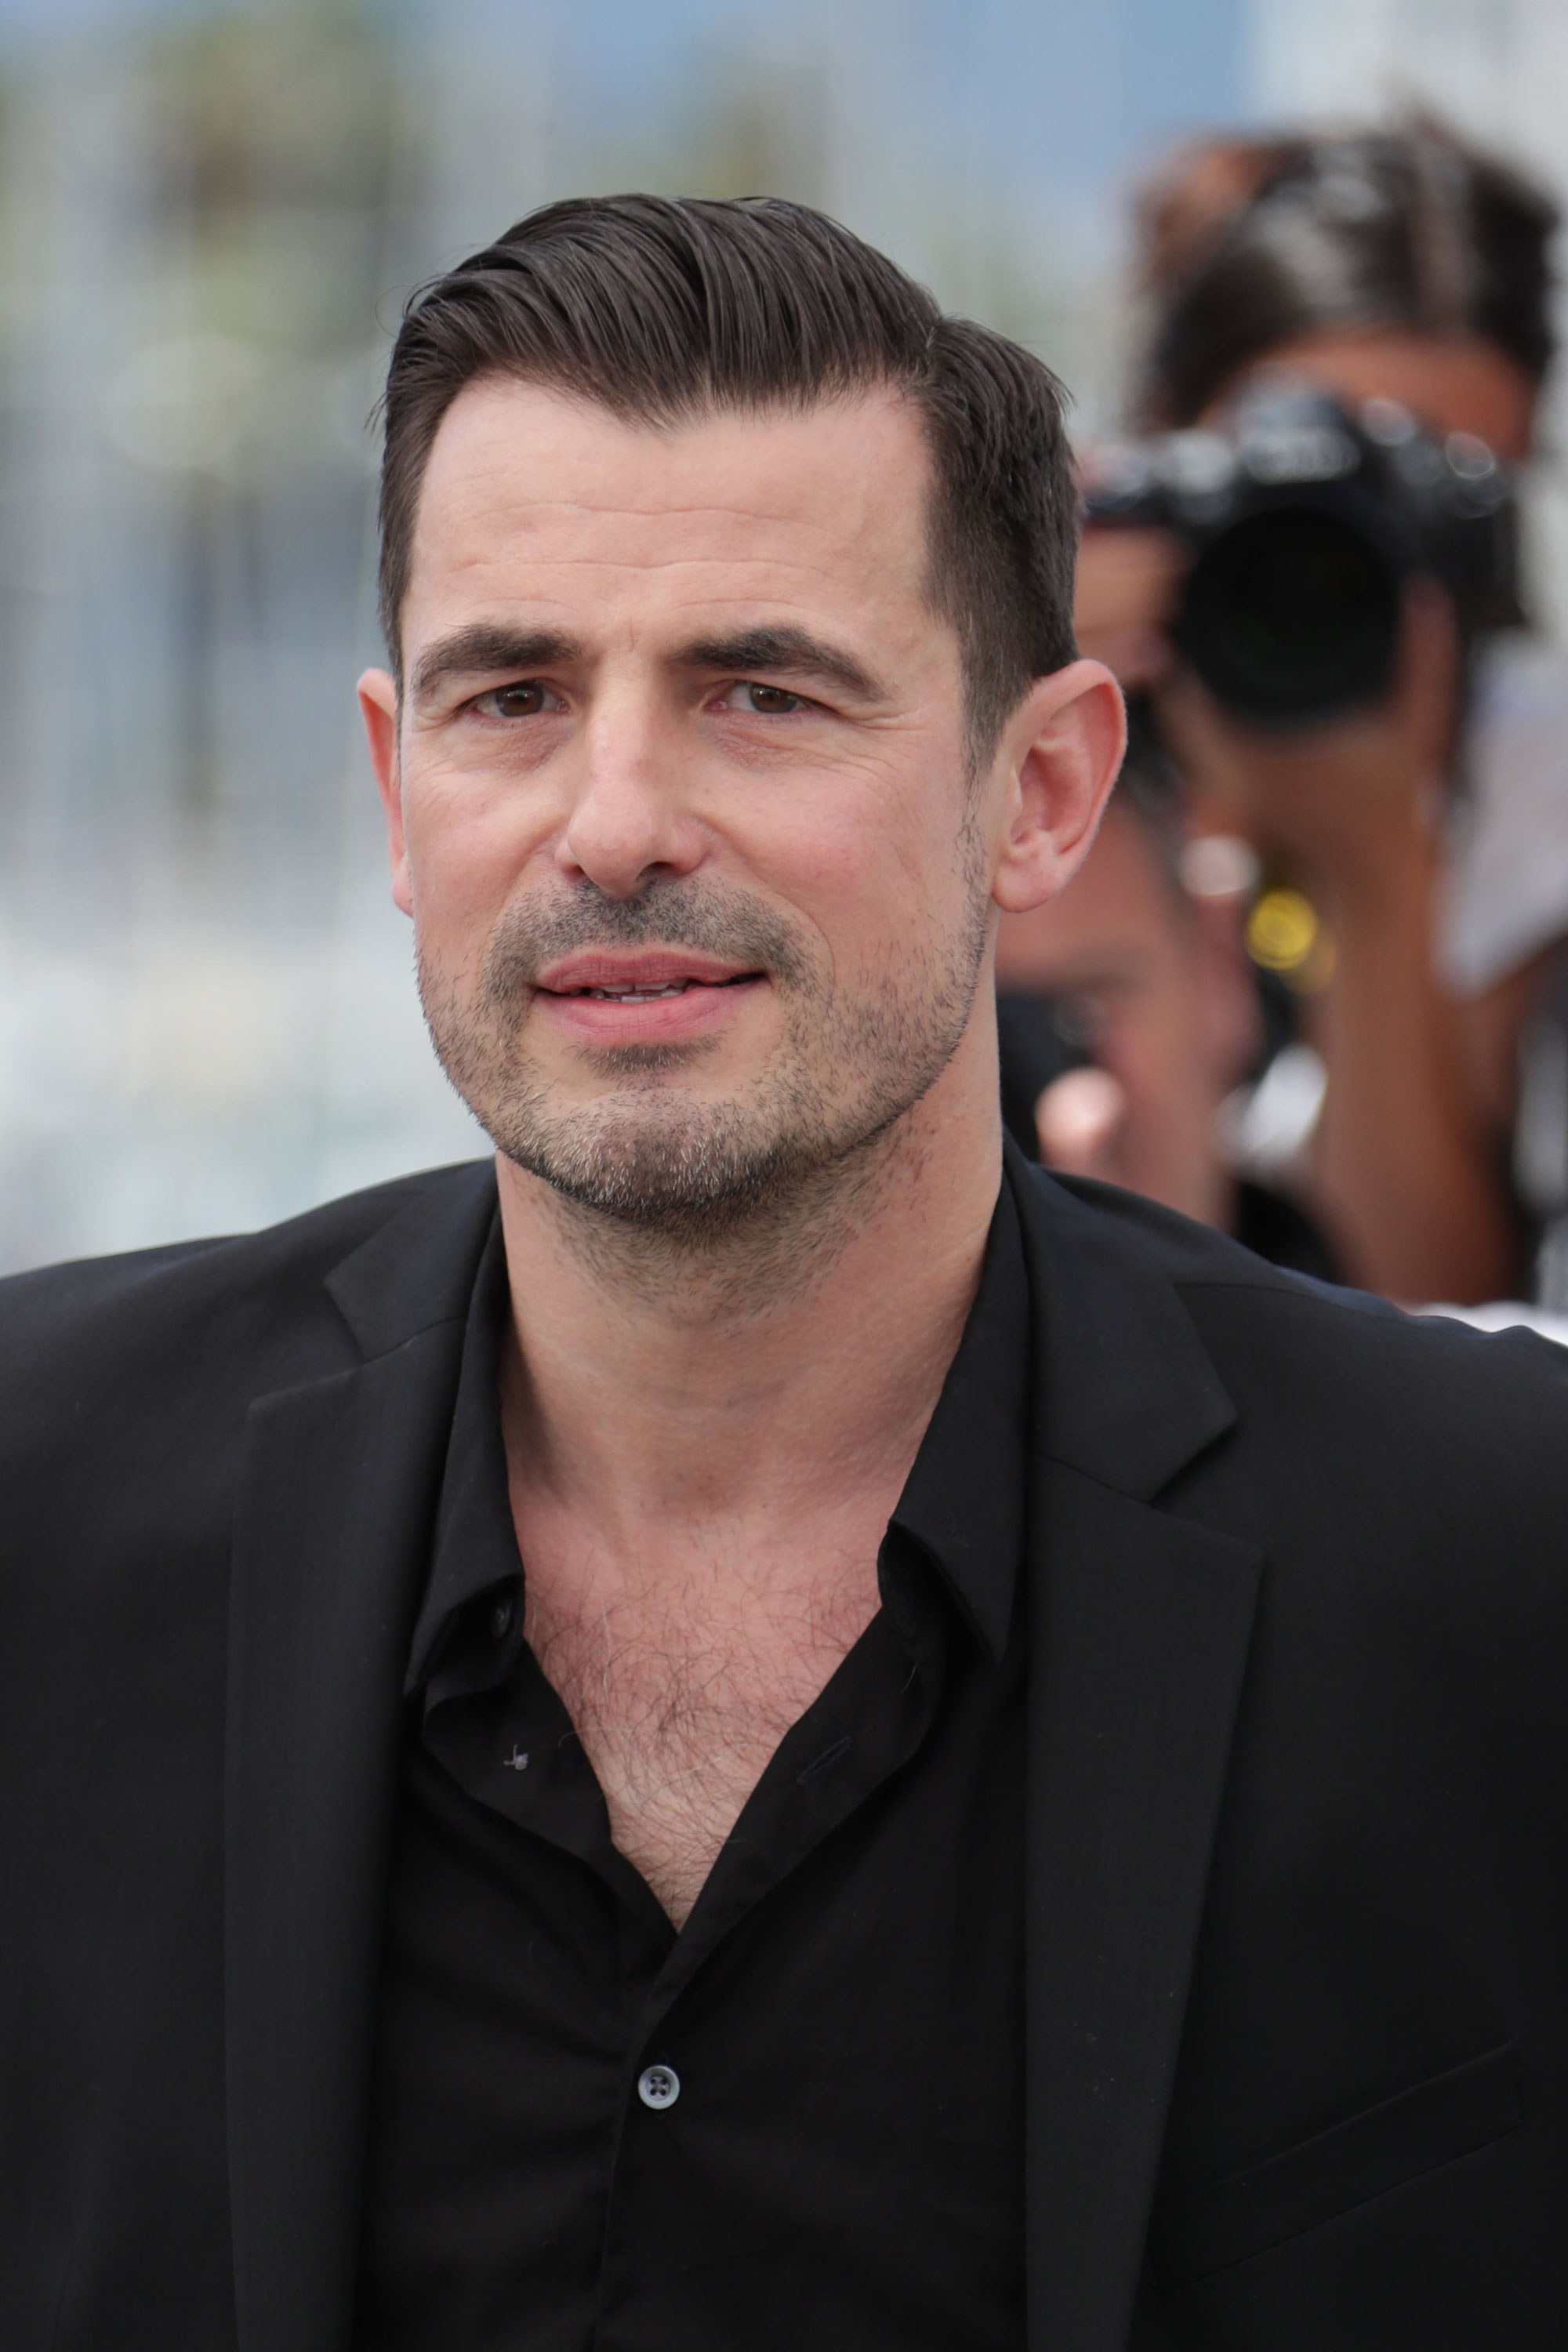 Claes Bang : wiki, age, height, wife, the square, neworth, family